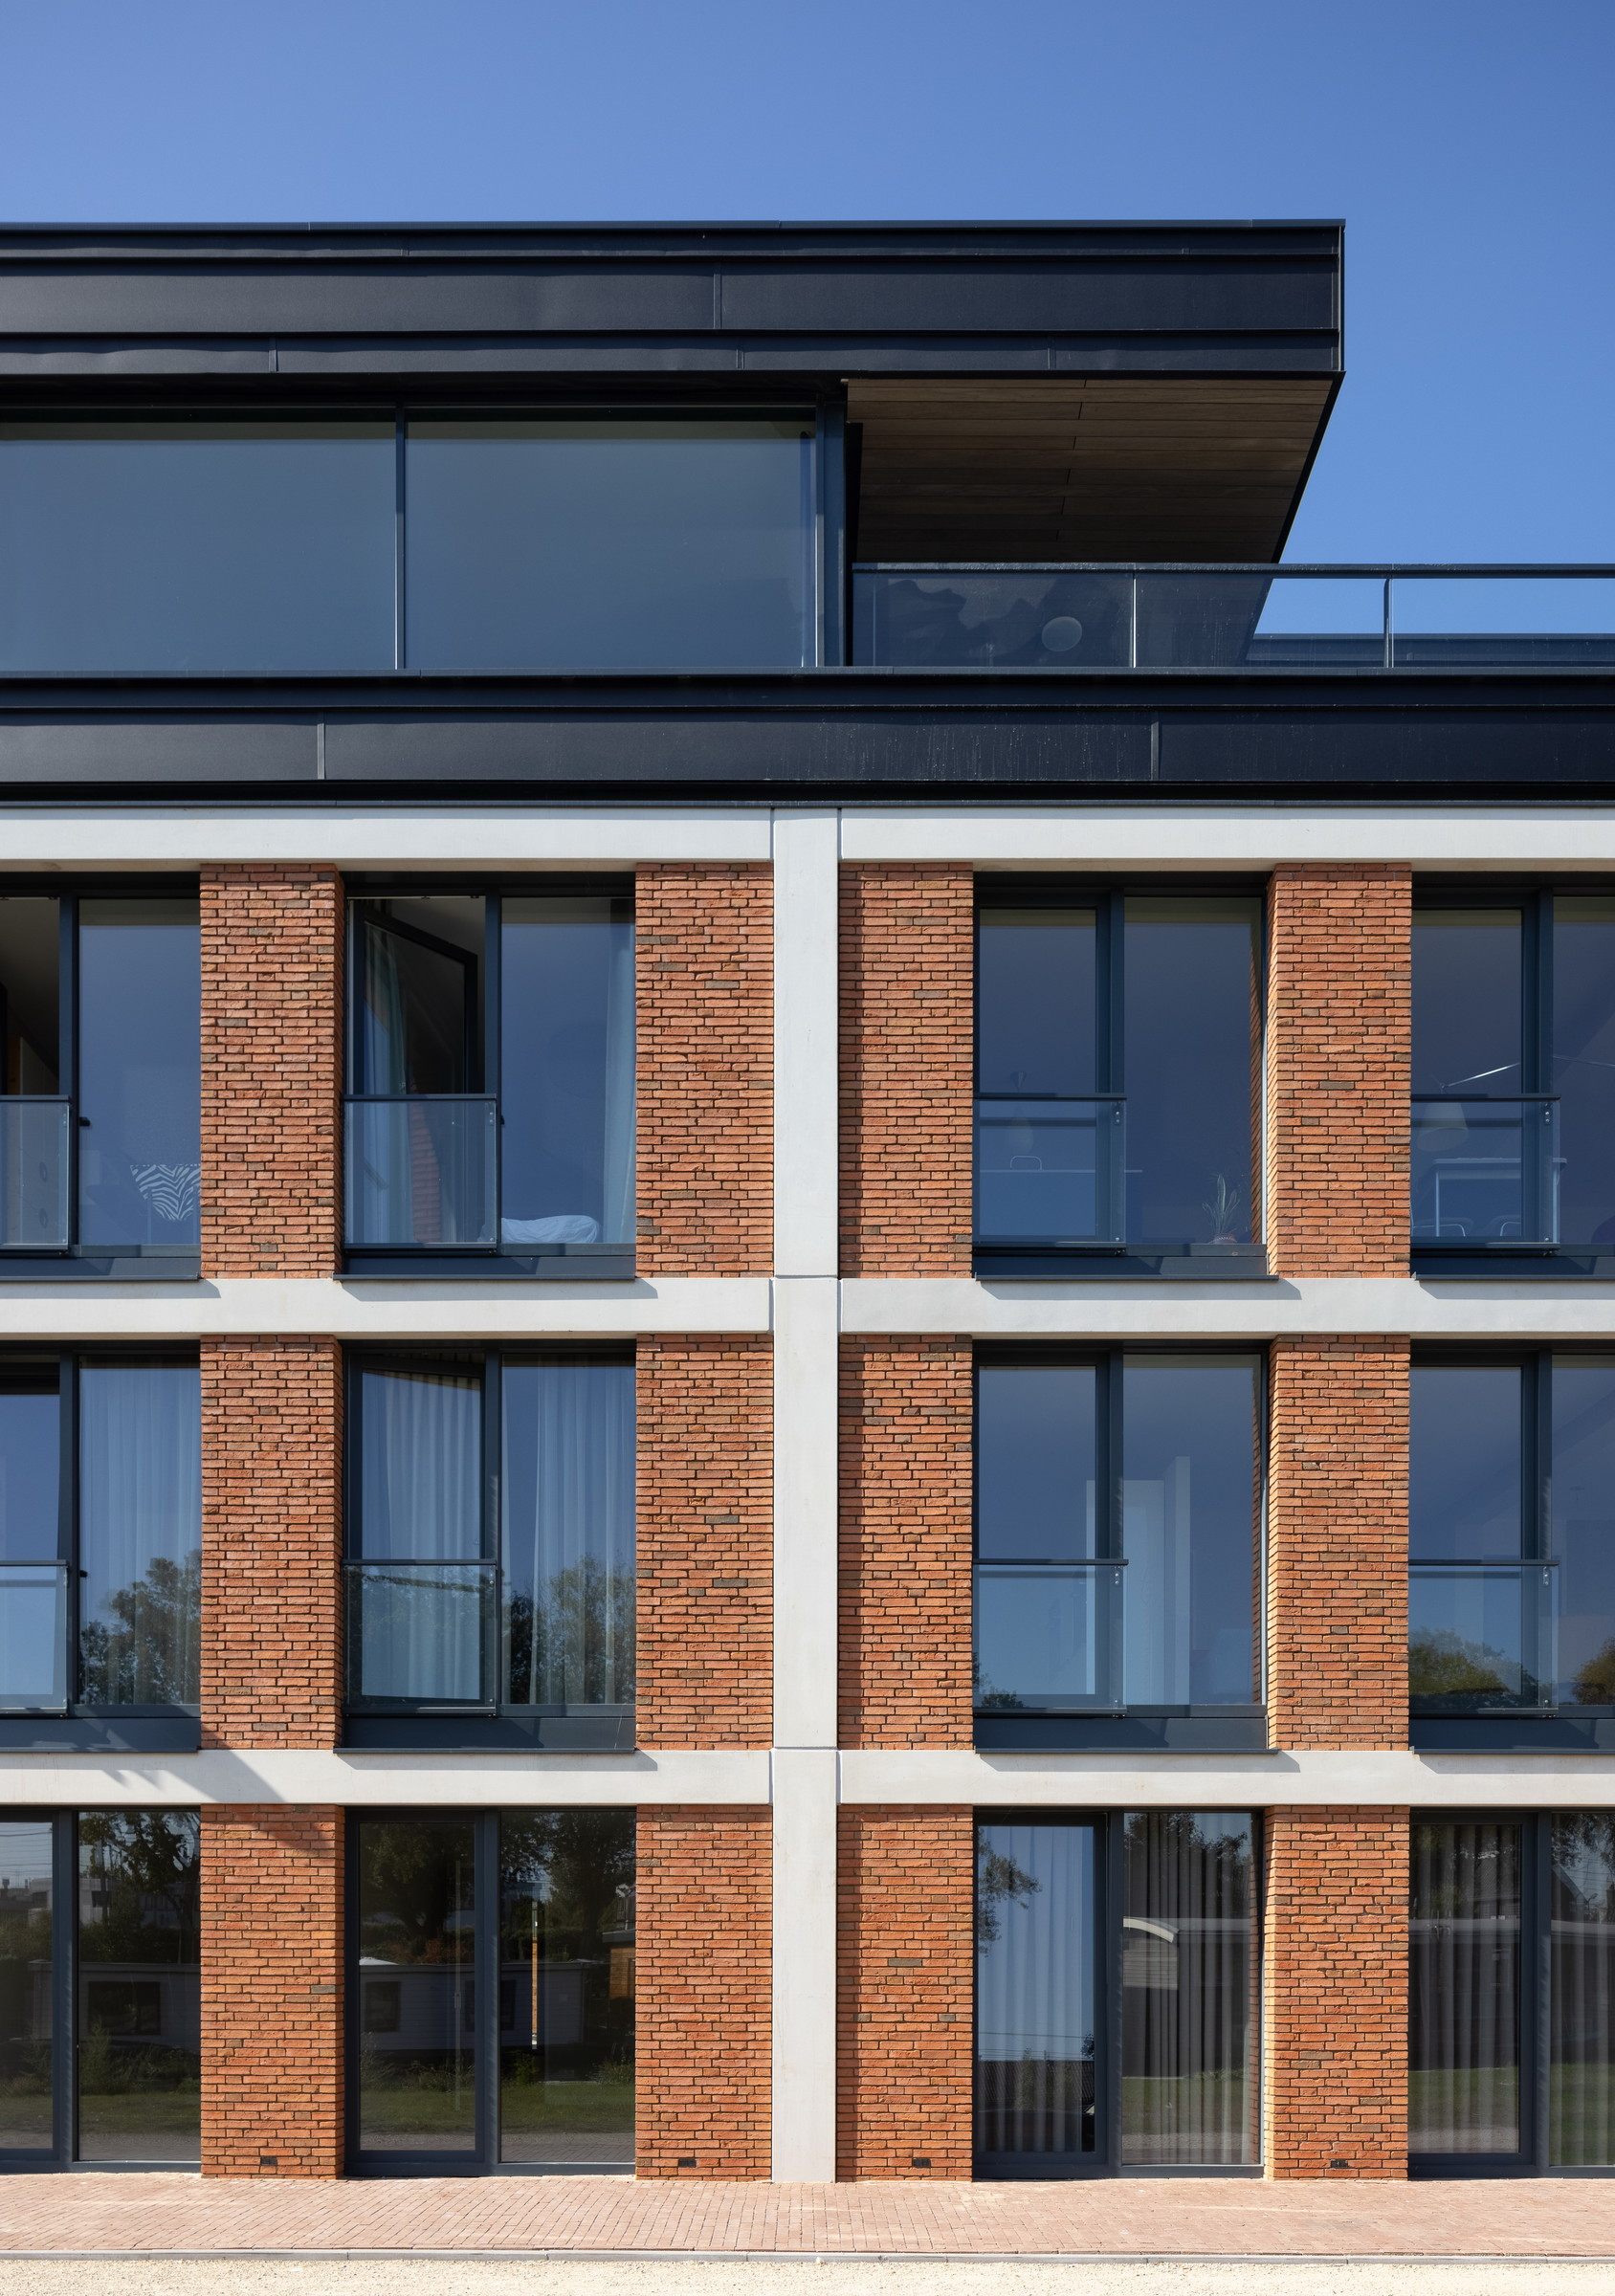 07-Zecc_Architecten-Defensieeiland-Woerden-housing-.JPG